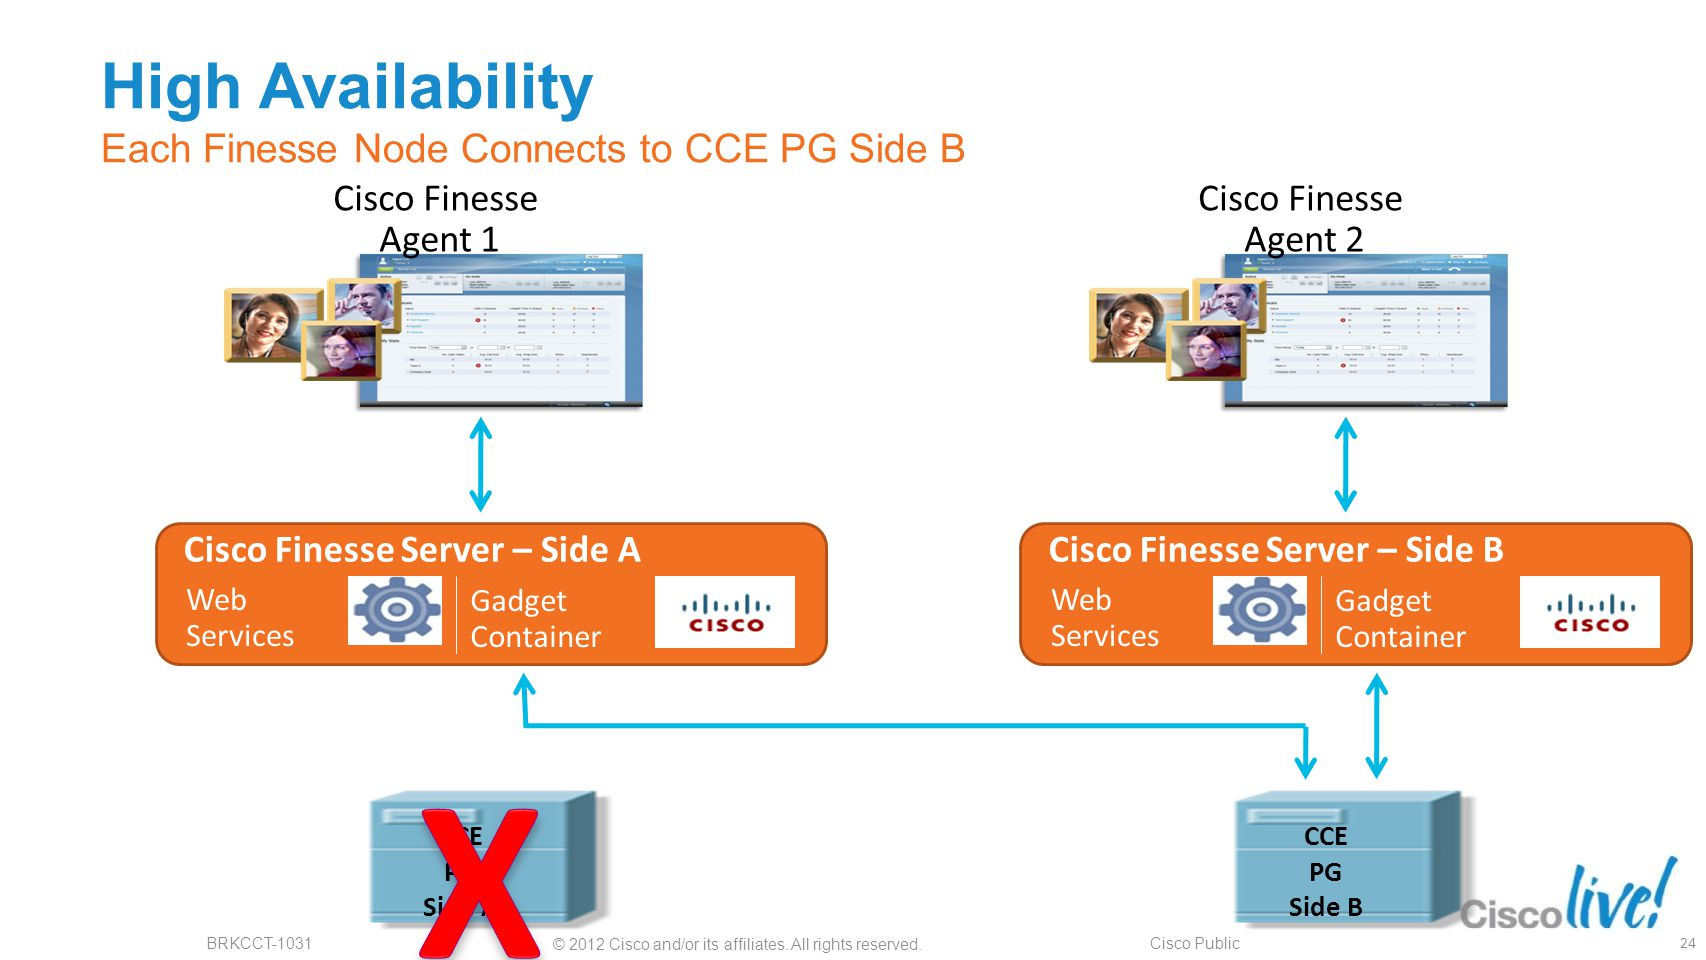 High Availability Each Finesse Node Connects to CCE PG Side B